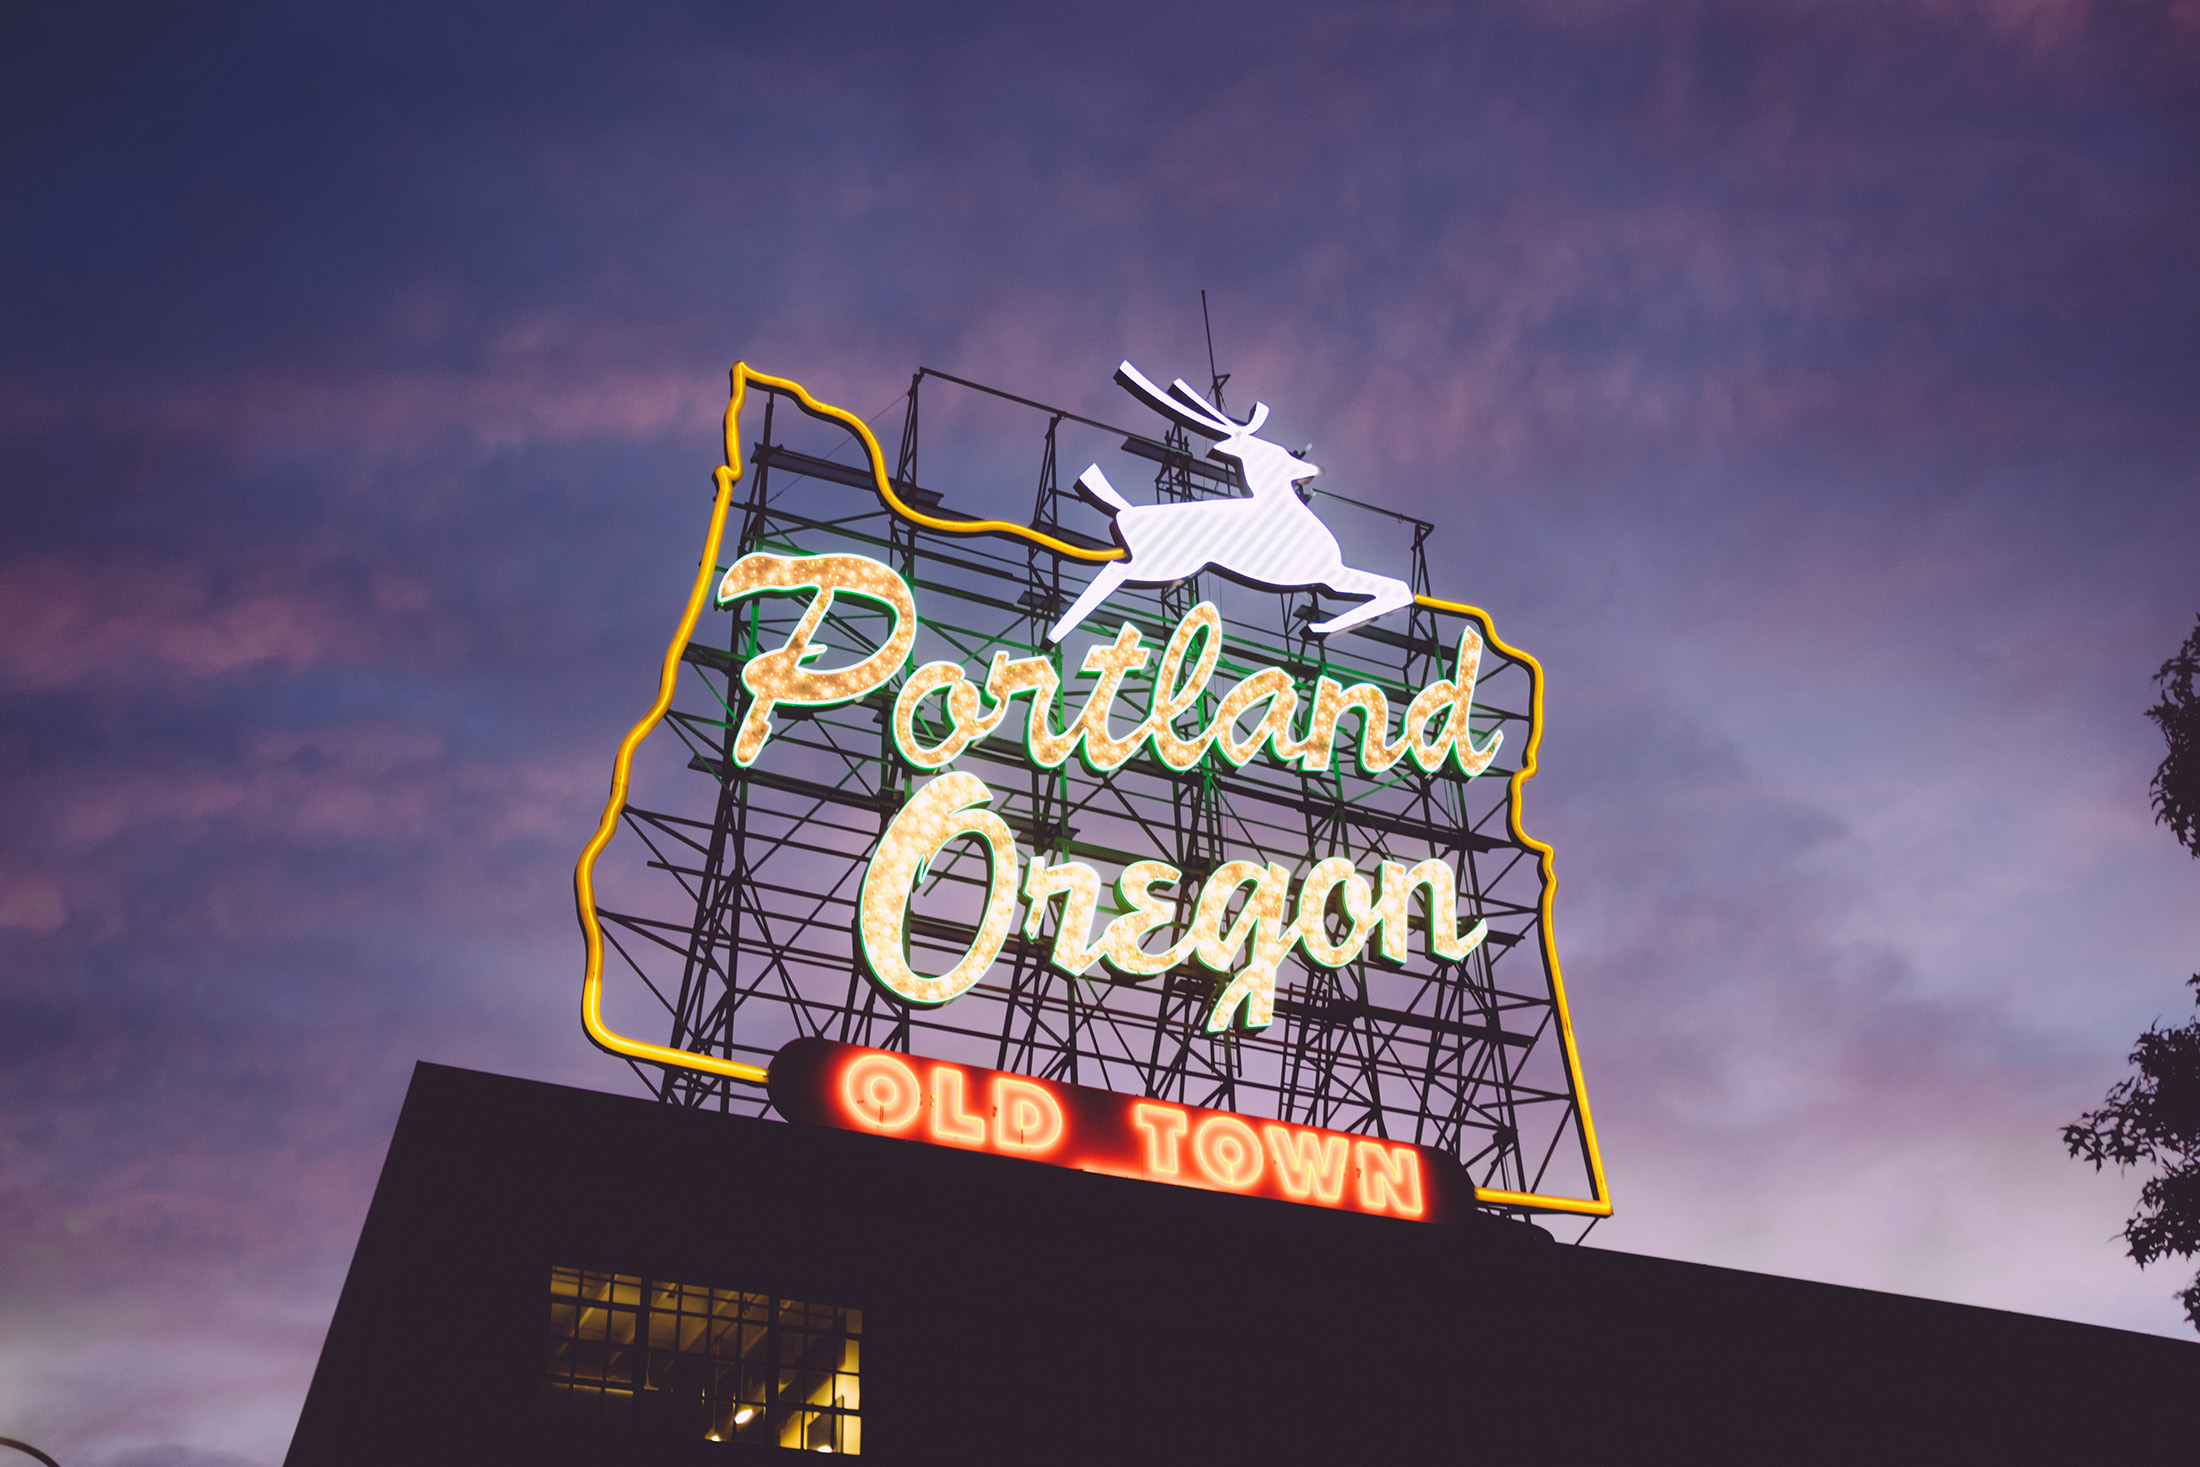 Neon Portland Oregon sign